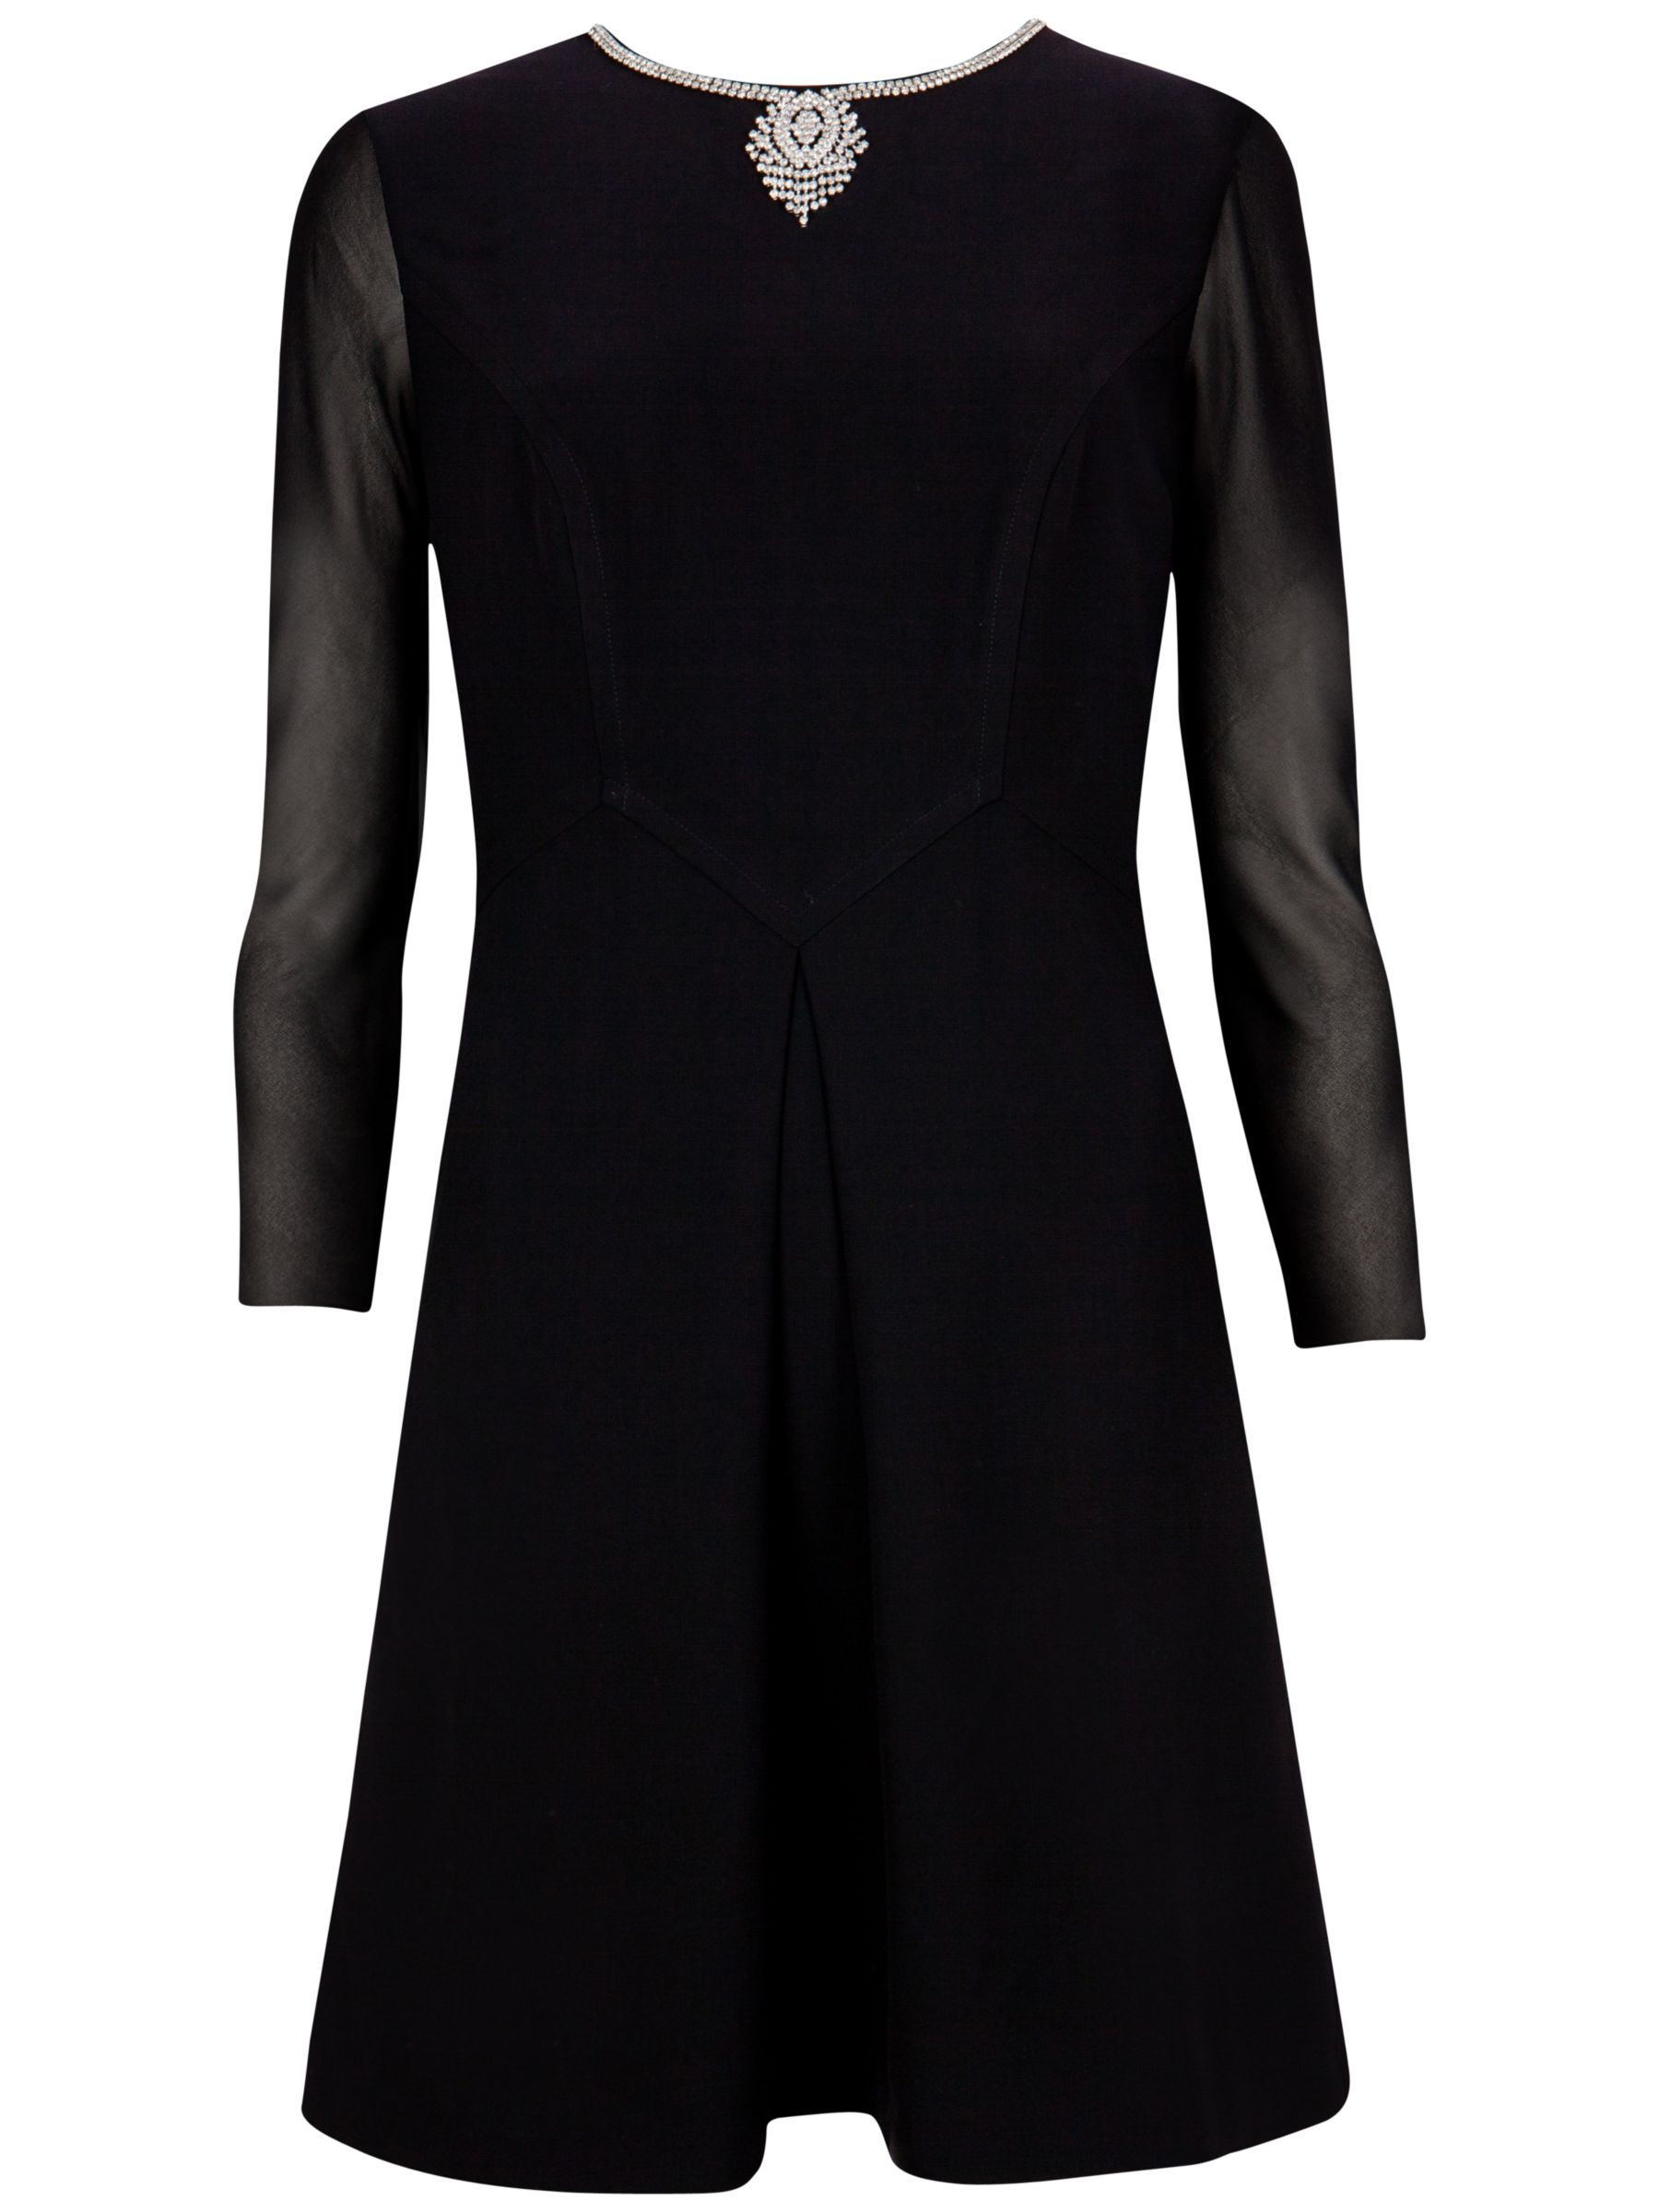 ted baker long sleeve necklace detail dress black, ted, baker, long, sleeve, necklace, detail, dress, black, ted baker, 1|3|4|2|0|5, women, womens dresses, special offers, womenswear offers, 30% off selected ted baker, party outfits, party dresses, fashion magazine, womenswear, men, brands l-z, 1797239